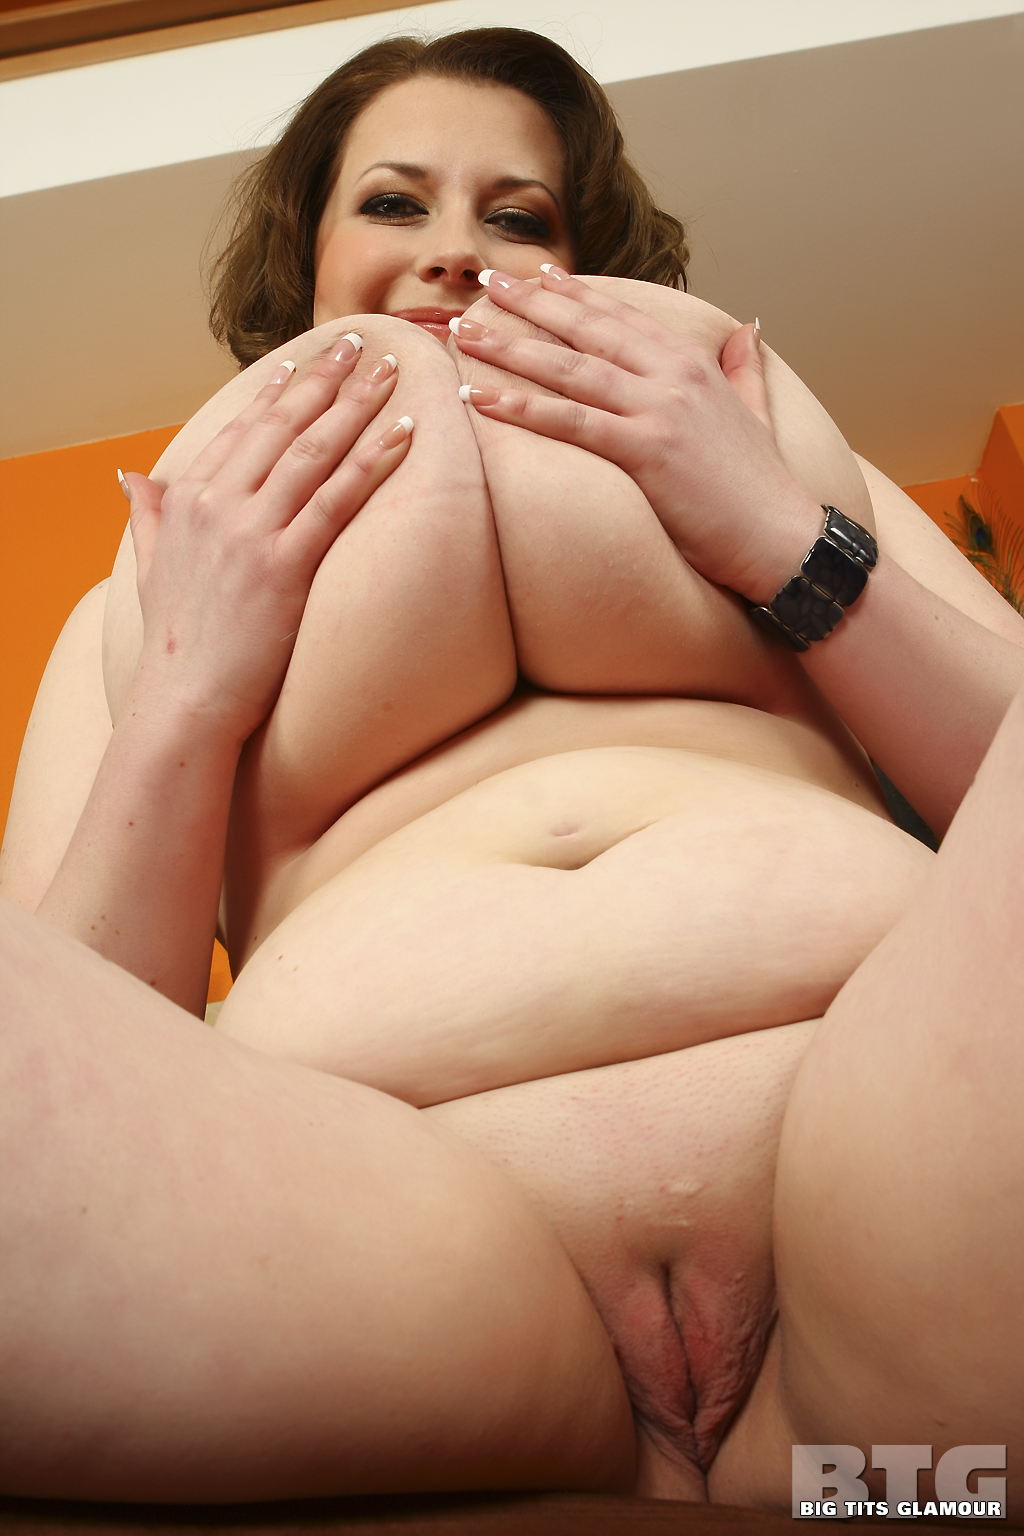 Huge nude breast